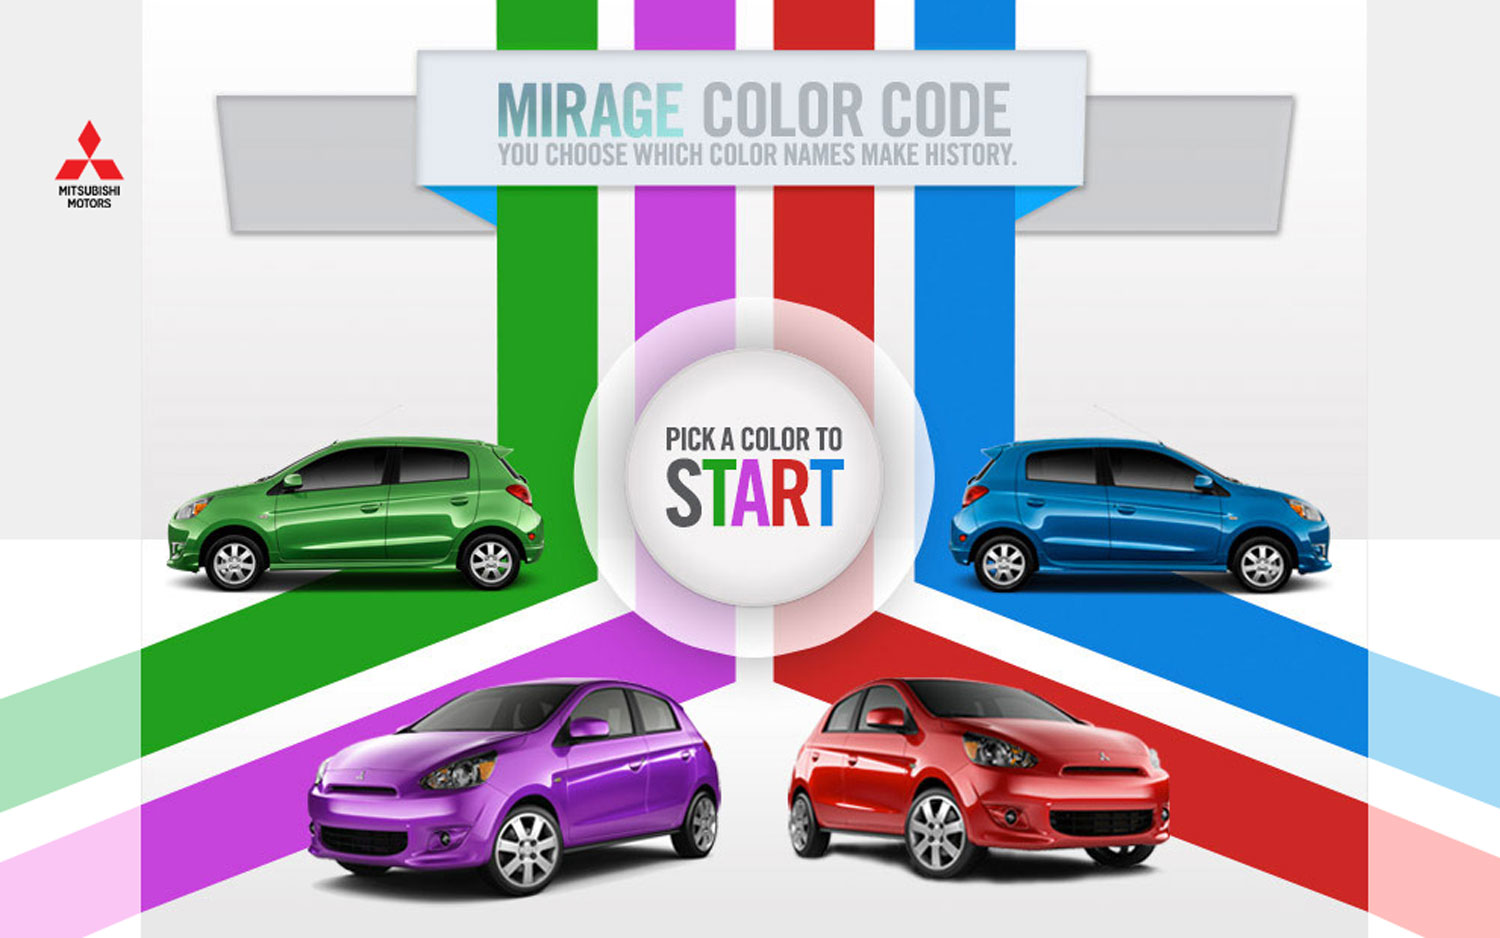 https://enthusiastnetwork.s3.amazonaws.com/uploads/sites/5/2013/05/2014-Mitsubishi-Mirage-paint-color-naming-contest-start-page.jpg?impolicy=entryimage